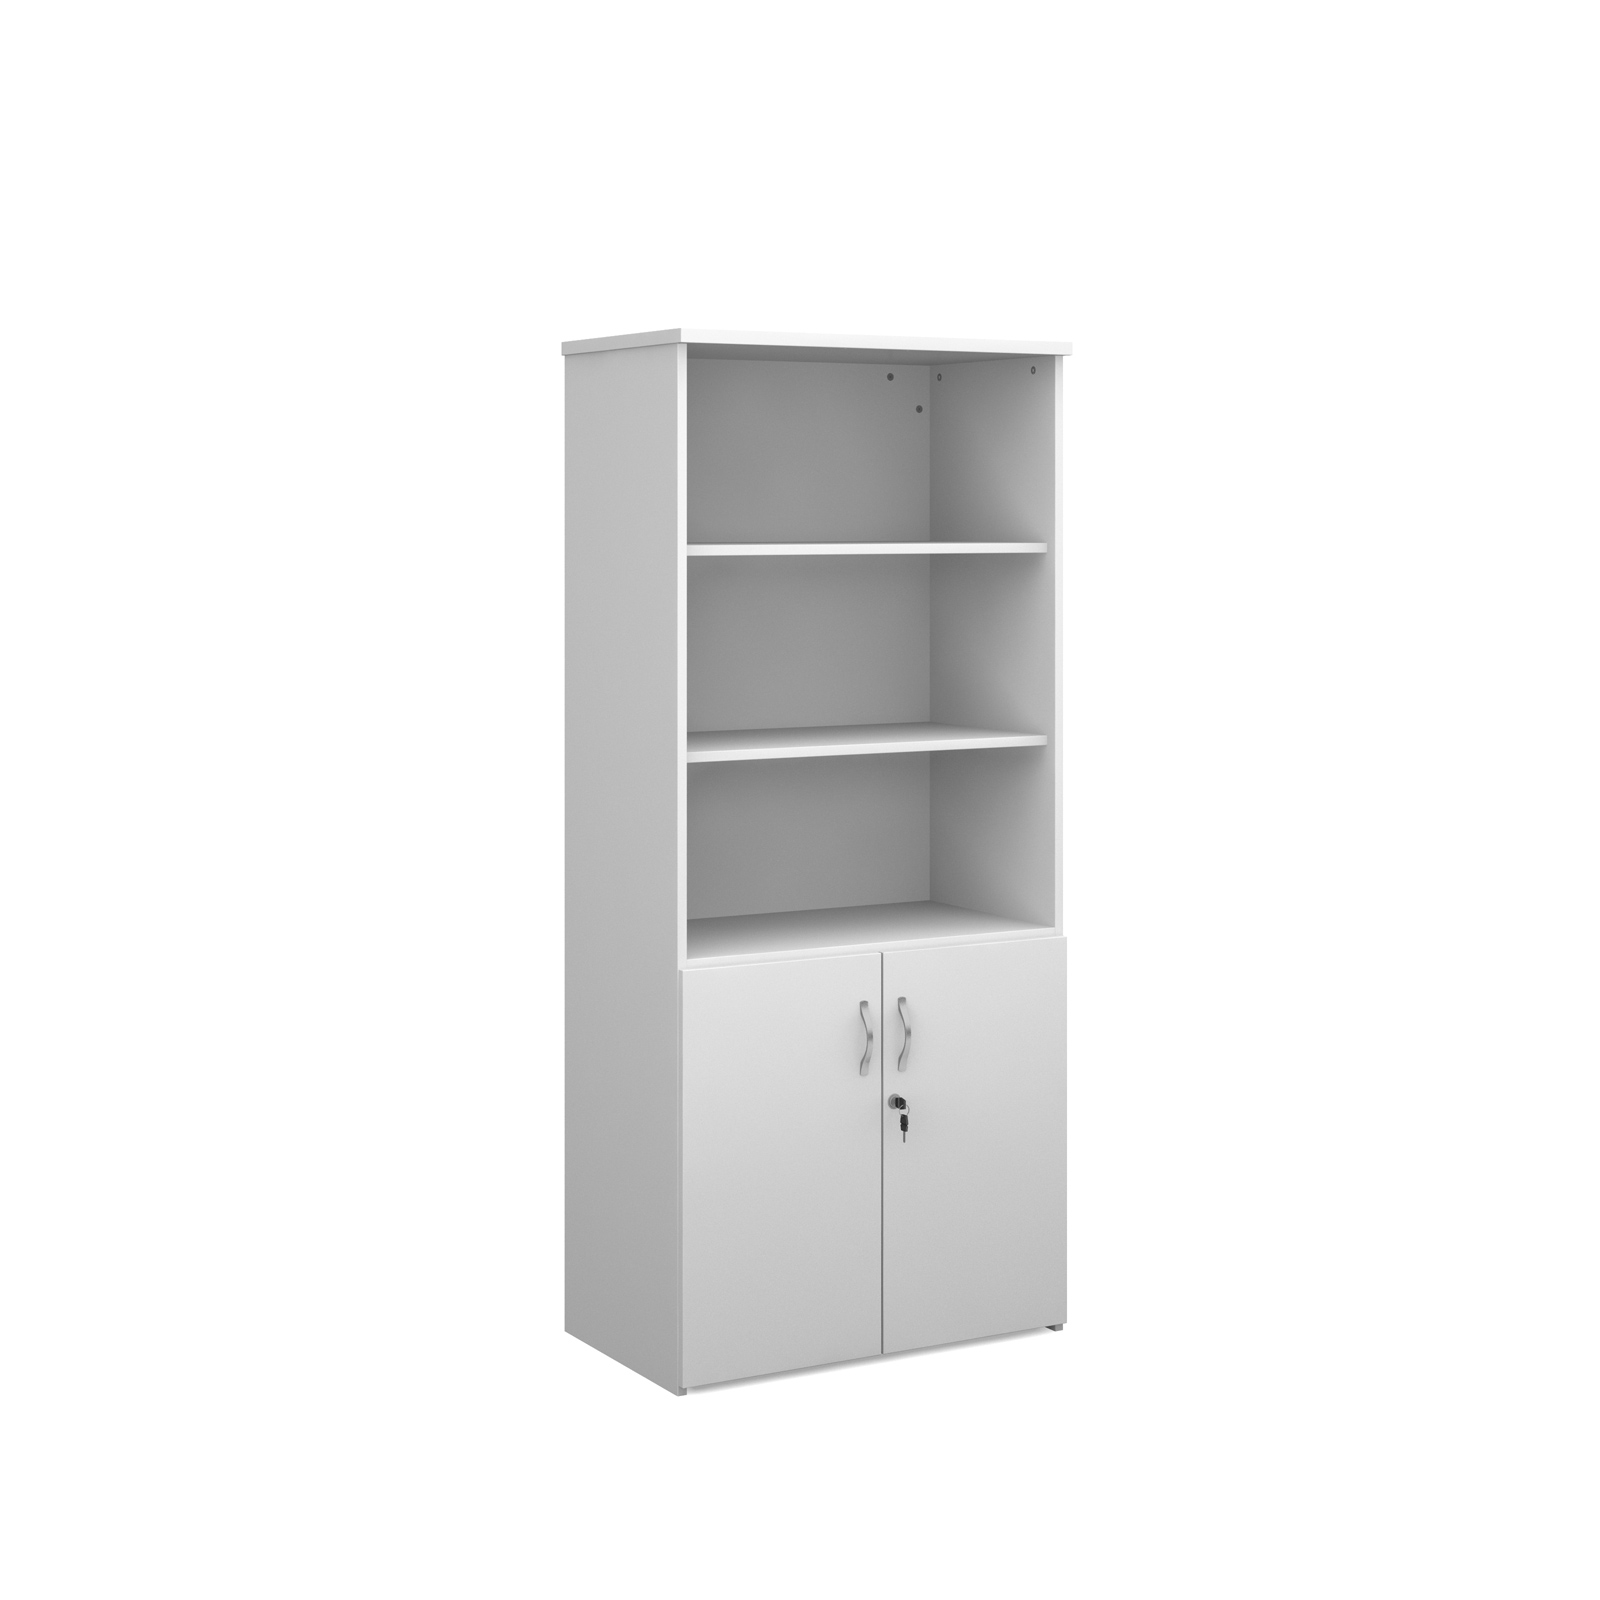 1790mm high combination unit with open top and wood doors in white